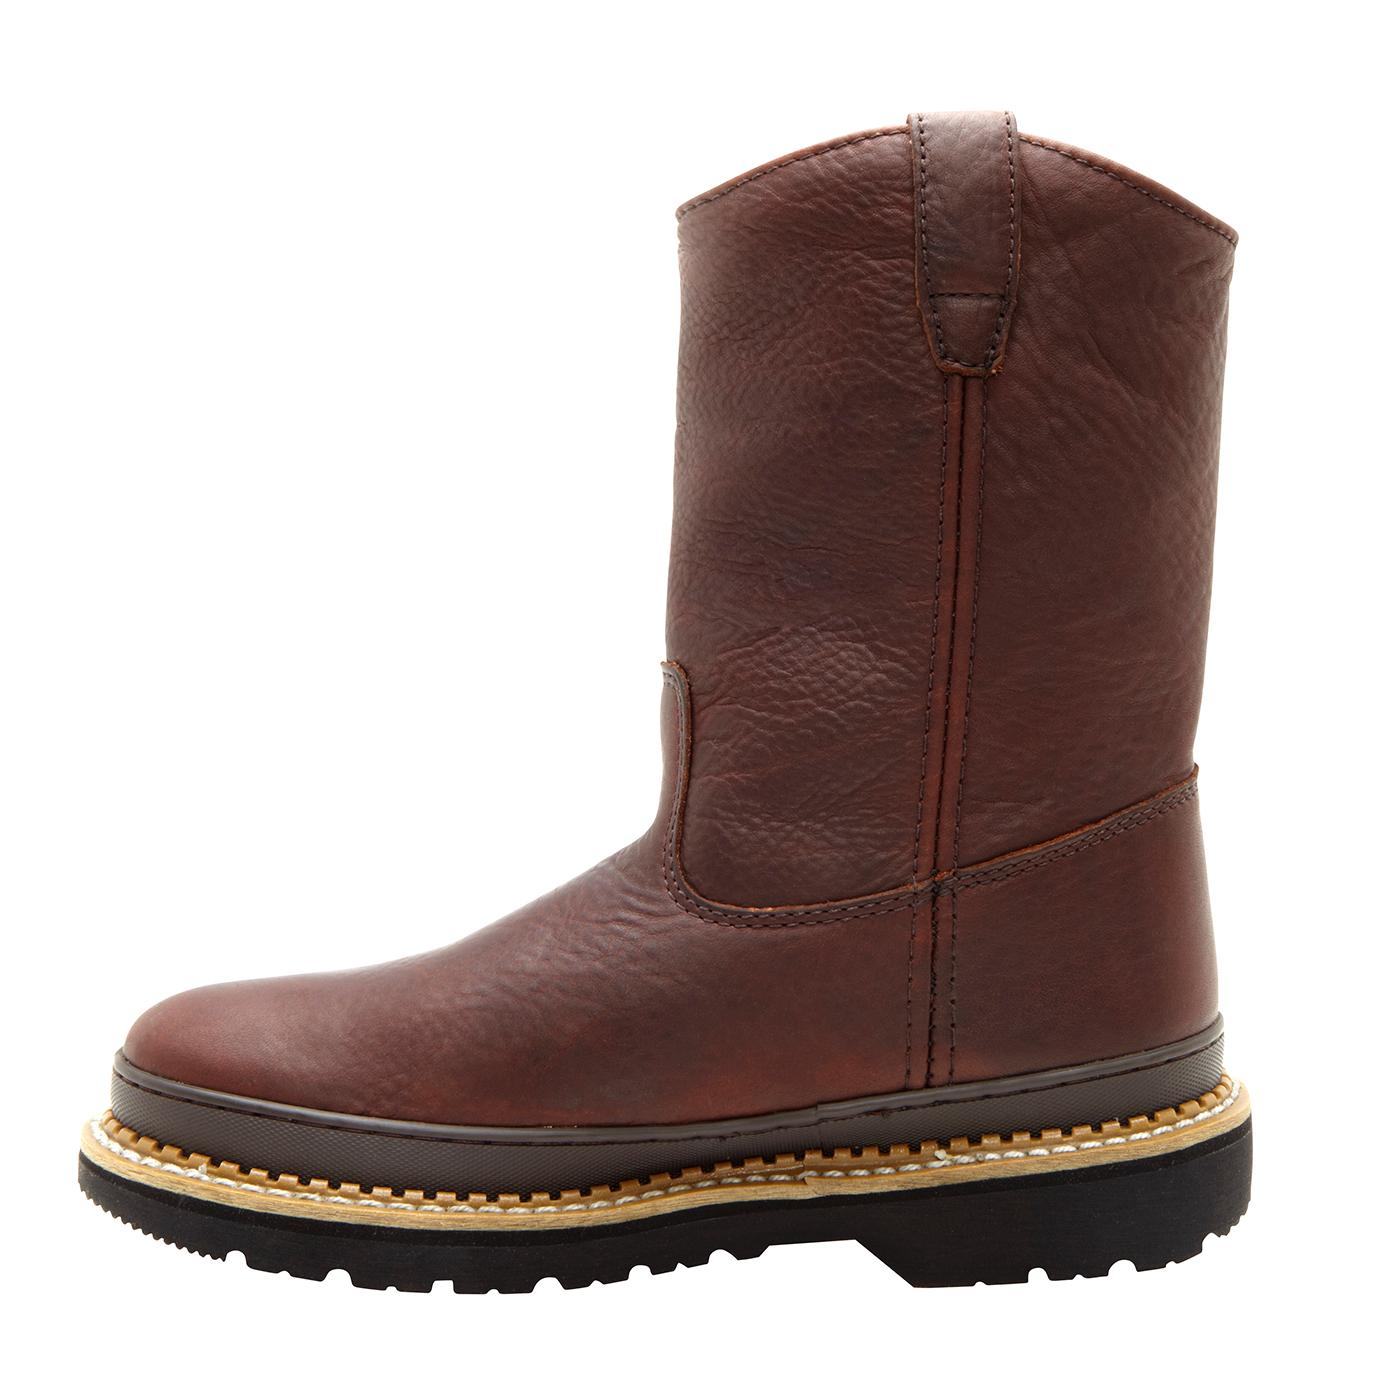 9 quot s wellington pull on work boot boot g3402